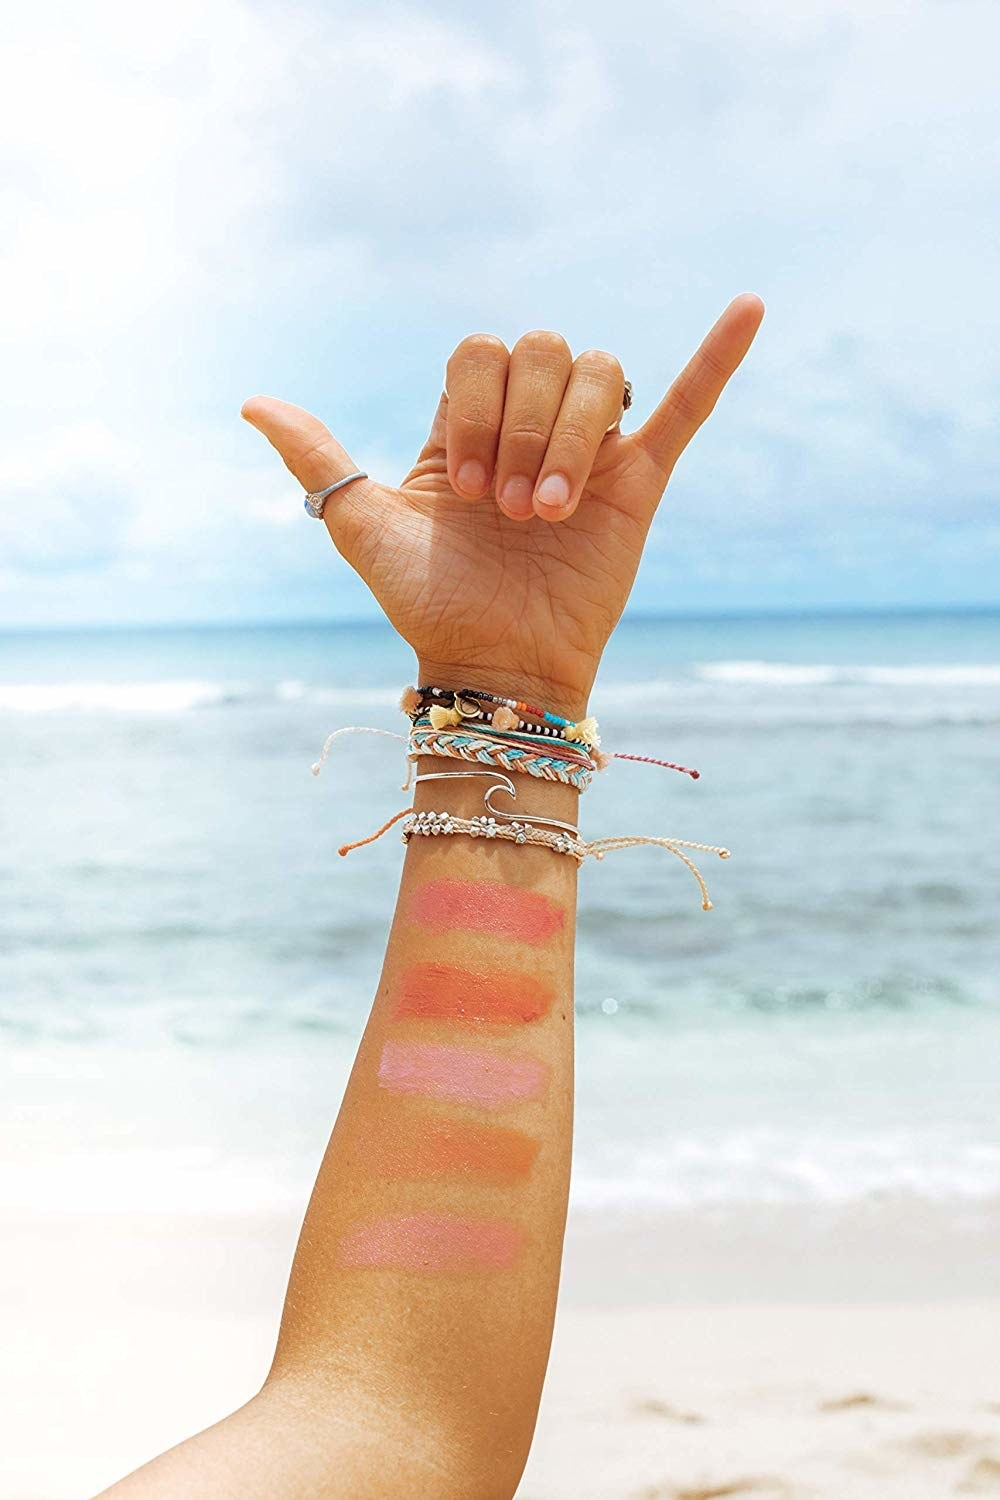 model's medium skin tone forearm with different colors swatched on it